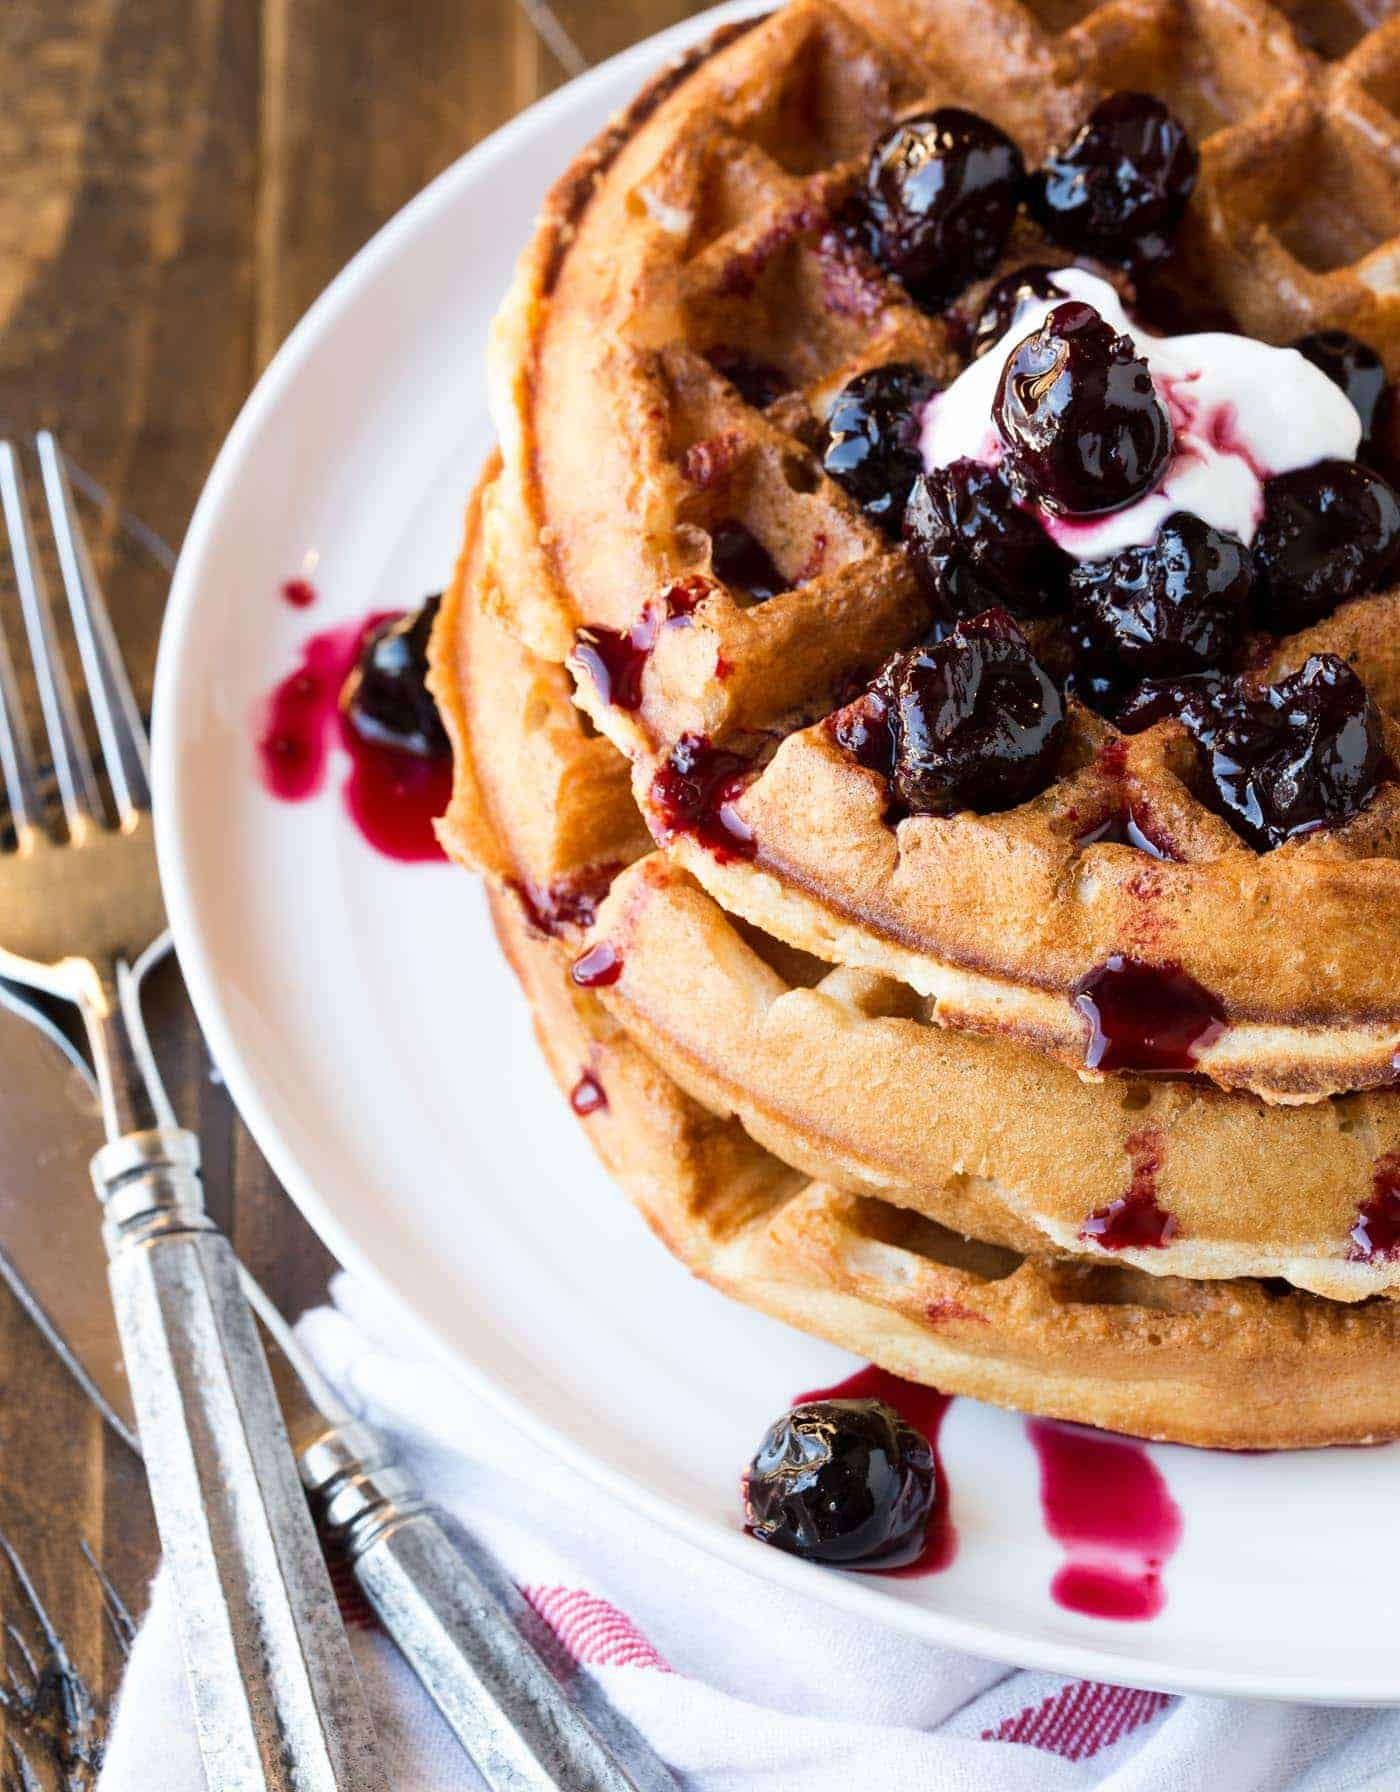 Stack of buttermilk waffles with cherry sauce.